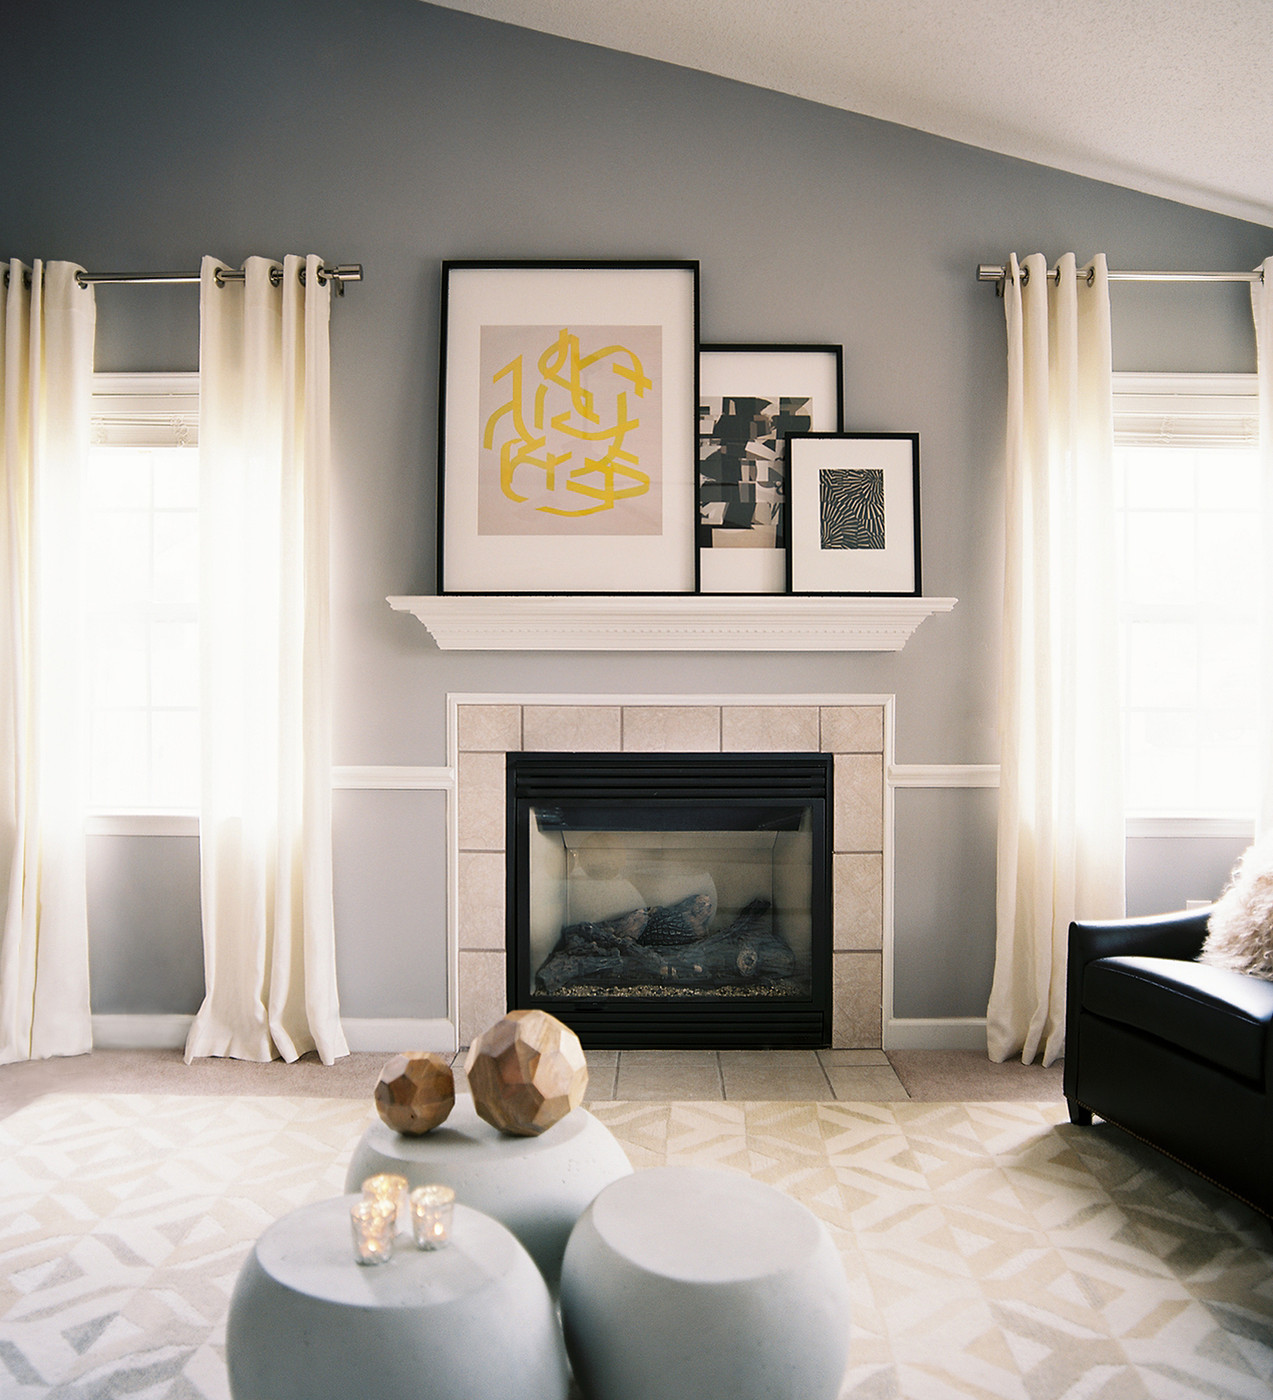 Beadboard Accent Wall On A Vaulted Ceiling Behind A Fireplace: Fresh Start: Breathing New Life